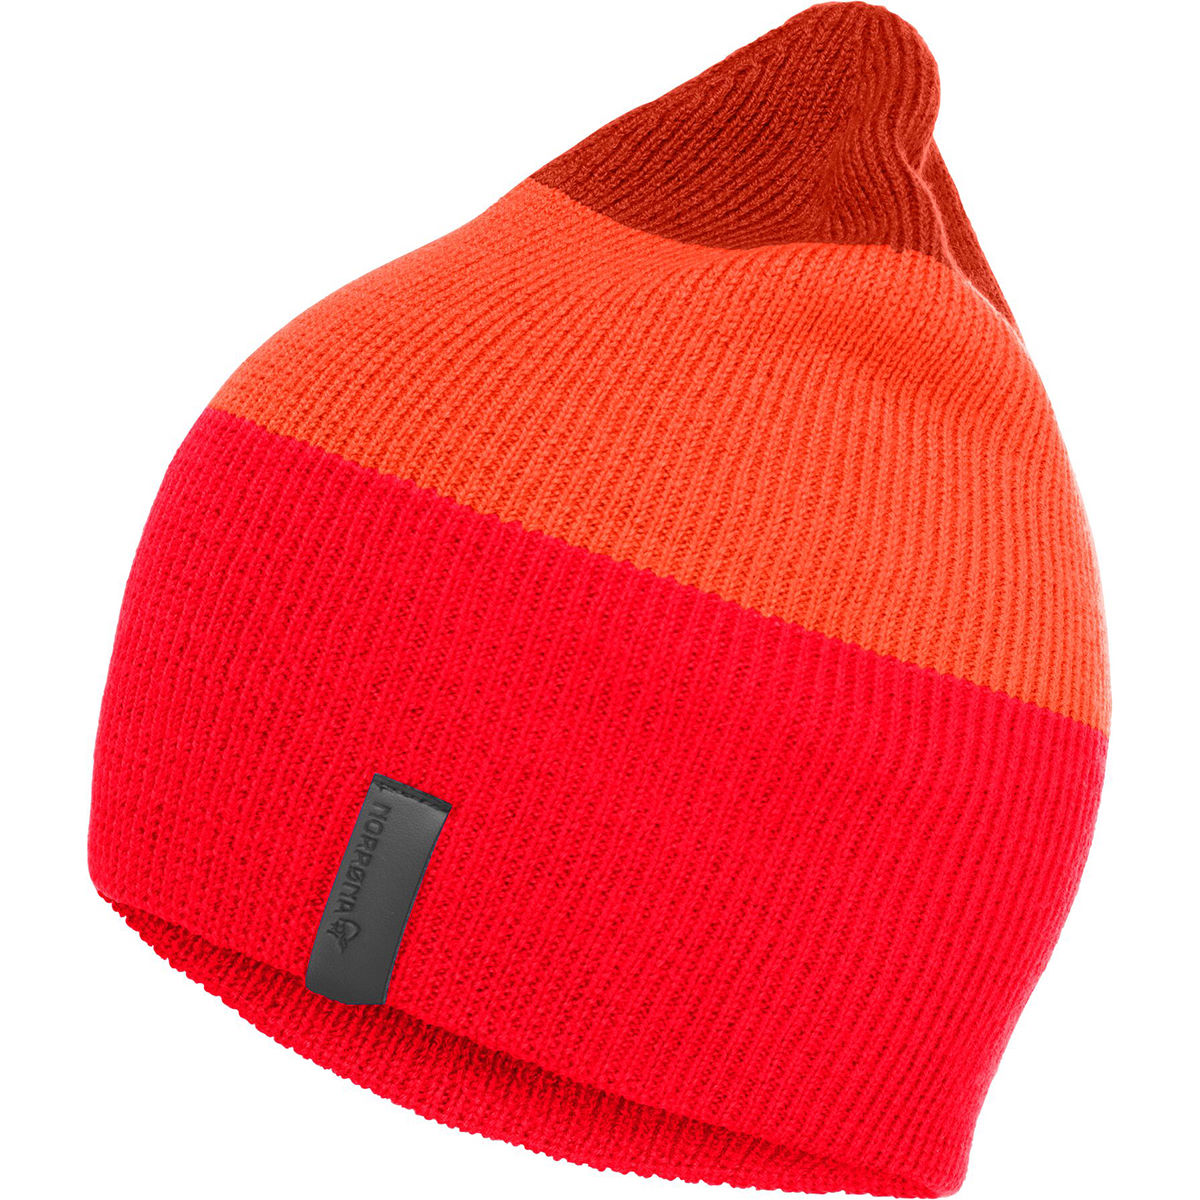 Norrøna Norrøna /29 Striped Mid Weight Beanie   Beanies